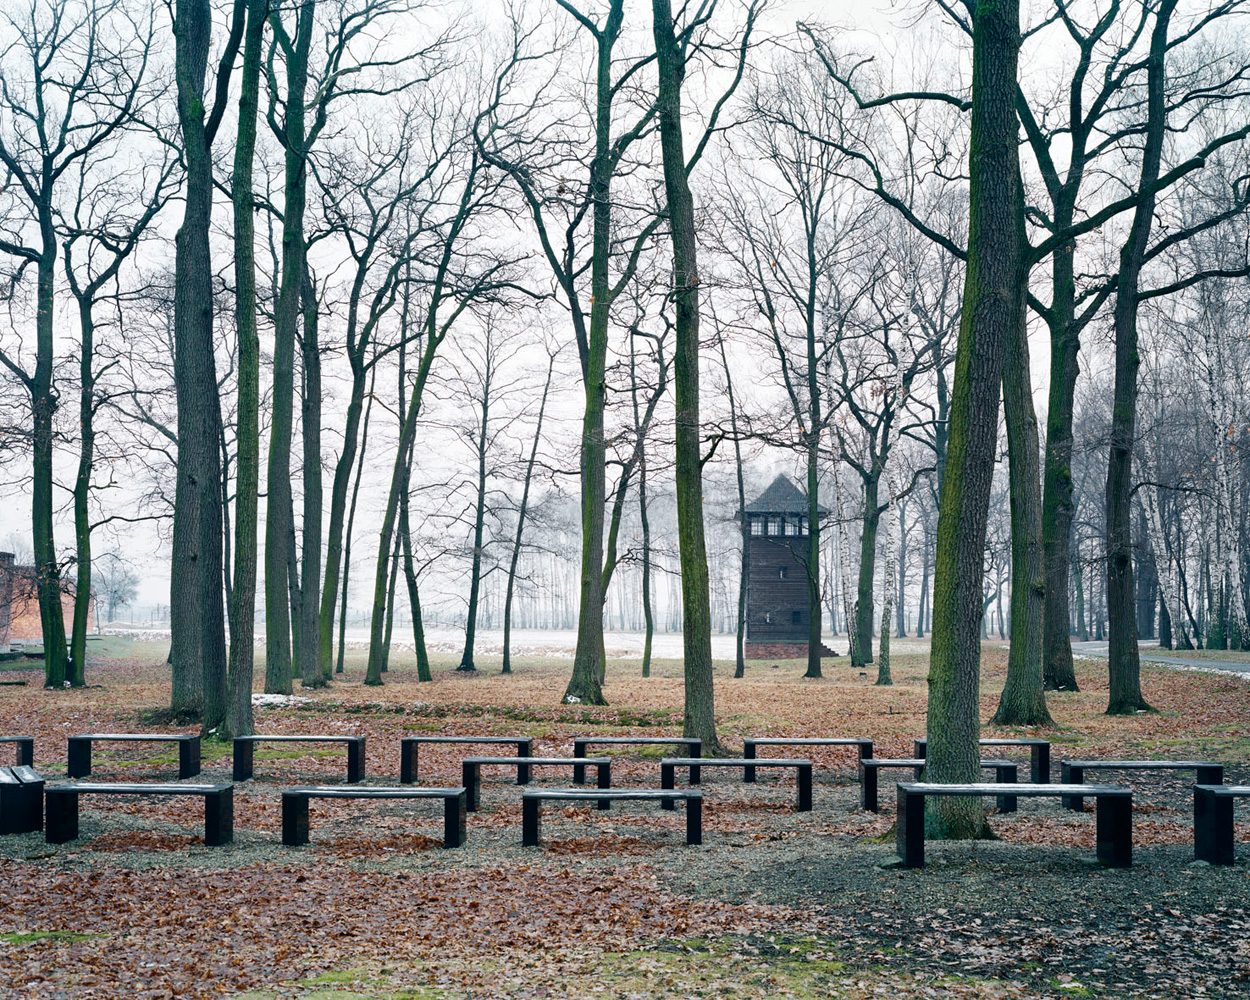 """Auschwitz-Birkenau State Museum – Poland. 2009.On July 2, 1947, the Polish Parliament passed an act on the preservation """"for All Time of the Site of the Former Camp."""" In 2011, the Auschwitz Memorial was visited by 1.4 million people—a record number in the history of the Memorial."""